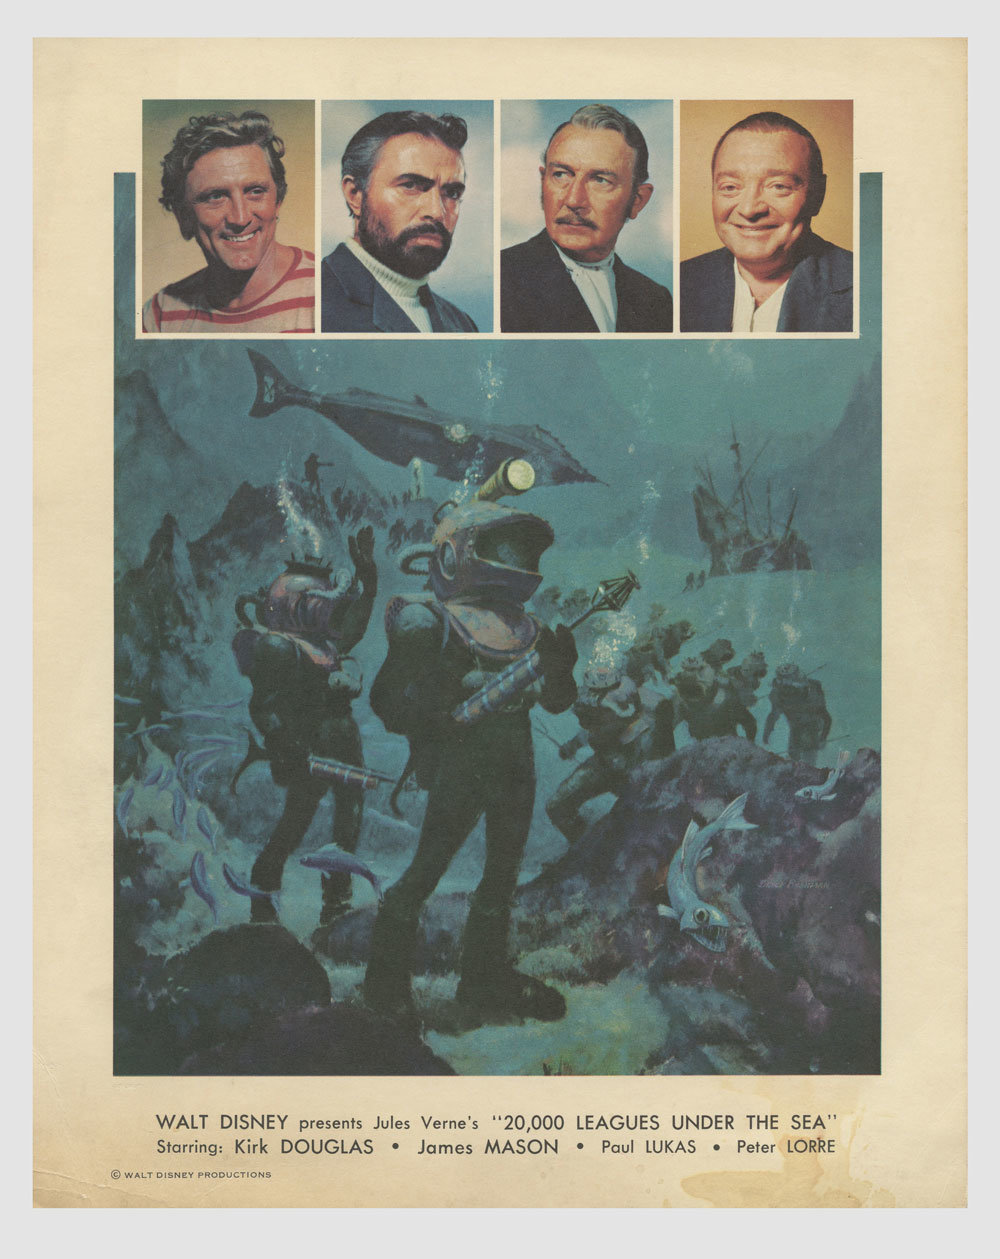 Kirk Douglas James Mason 1954 20,000 Leagues Under the Sea Lobby Card 8x10